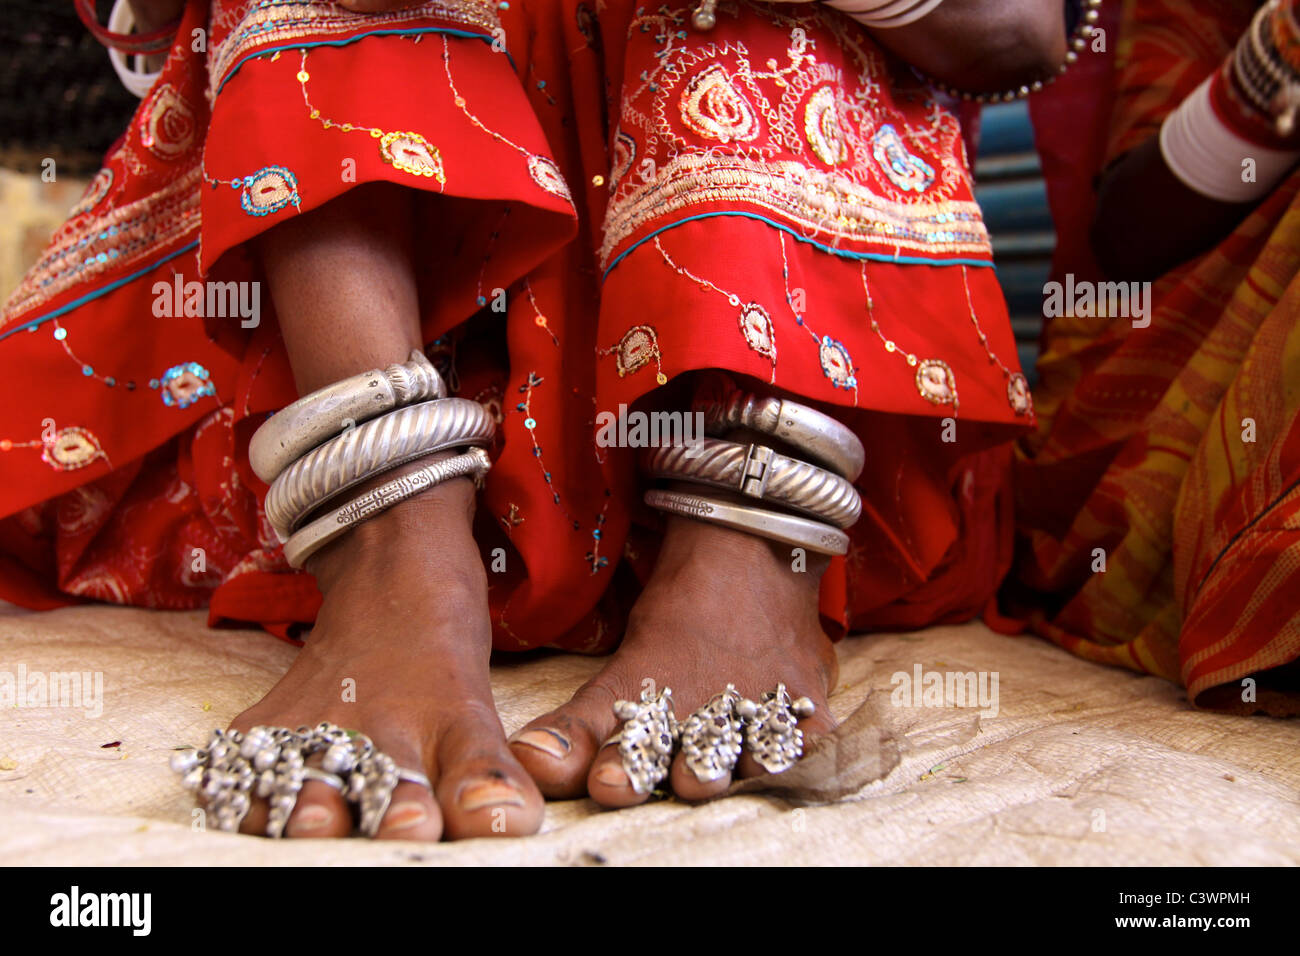 Traditional tribal jewelery in Rajasthan, India - Stock Image